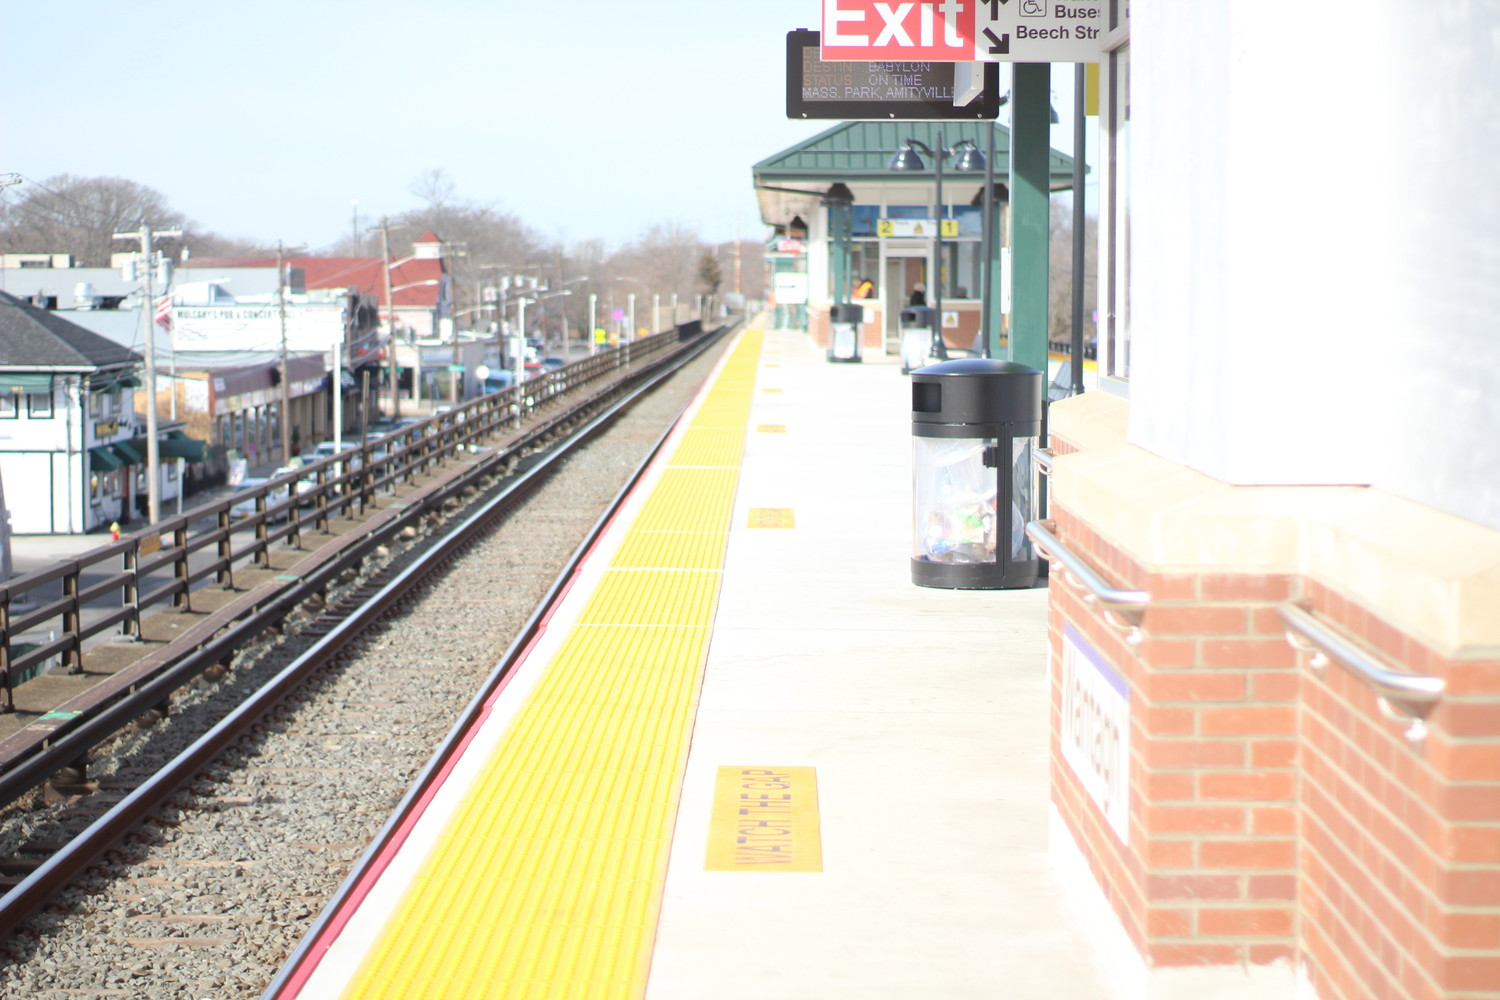 New electronic signs adorn a refurbished section of the Wantagh LIRR station platform. Phase 2 of the project is scheduled to be completed this fall.